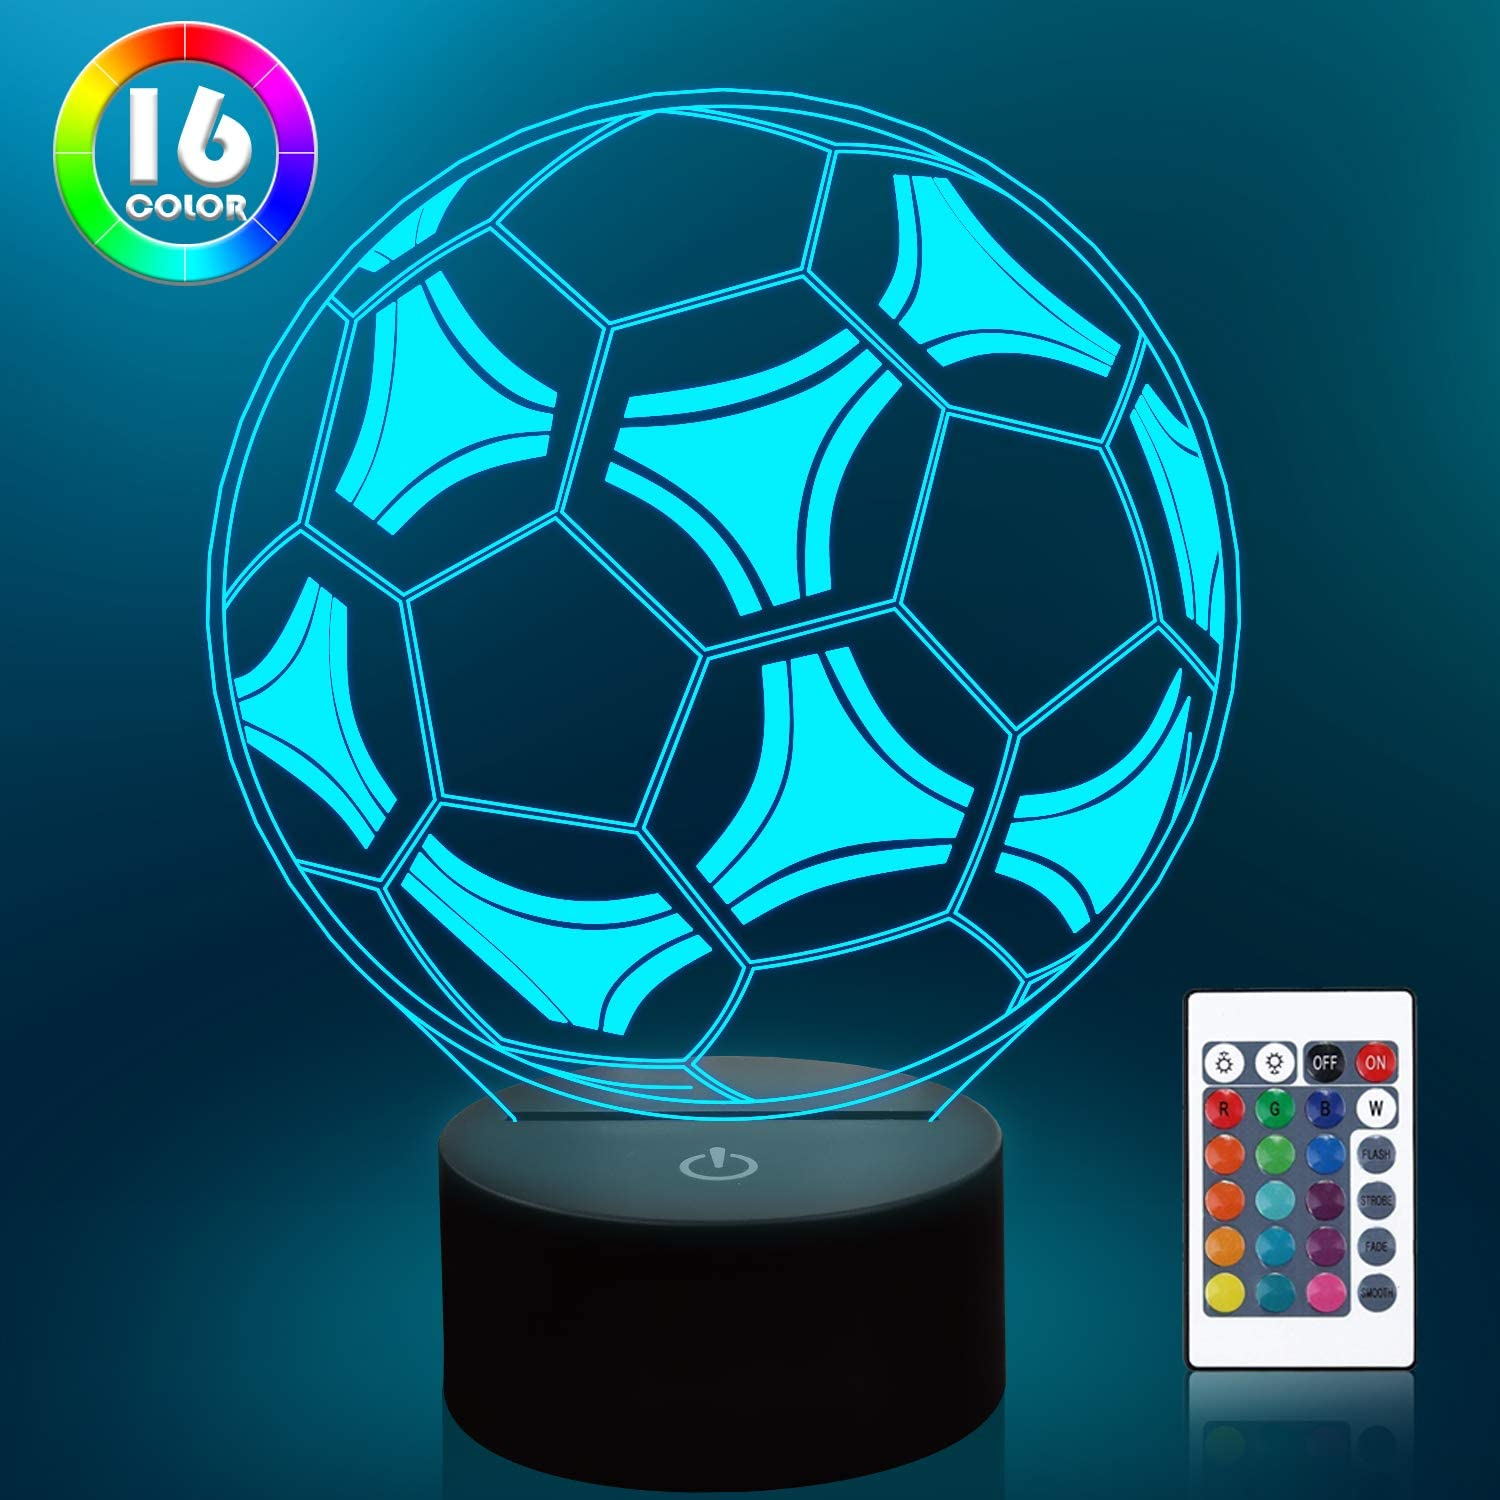 Lampeez Kids 3D Soccer Lamp Football Night Light Optical Illusion Lamp with 16 Colors Changing Remote Control Birthday Xmas Valentine's Day Gift Idea for Sport Theme Fan Boys Girls